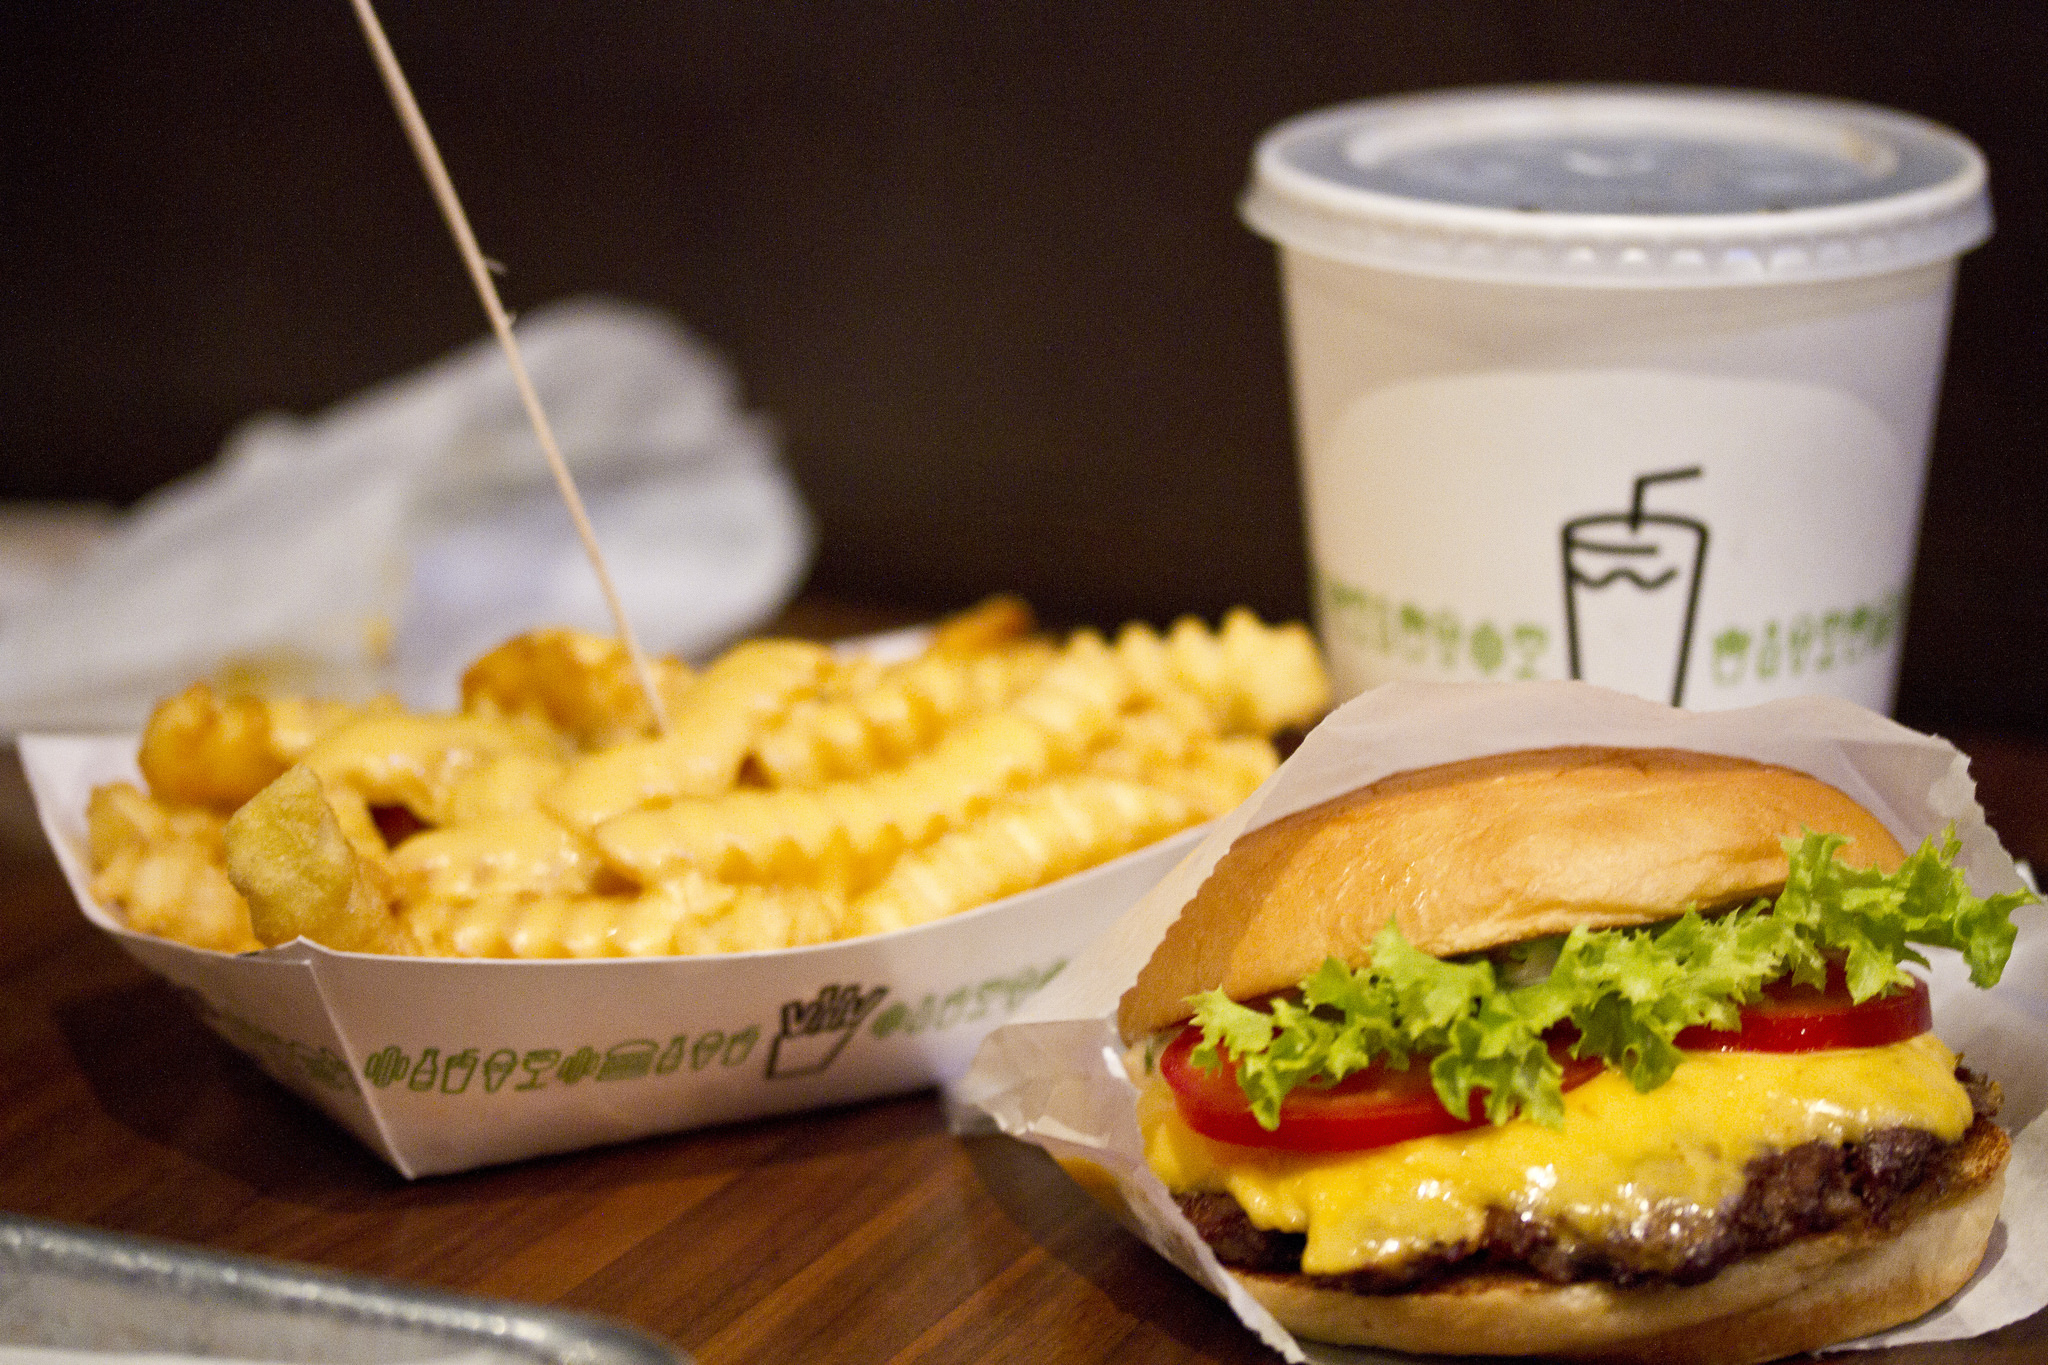 A Shackburger, fries, and a drink